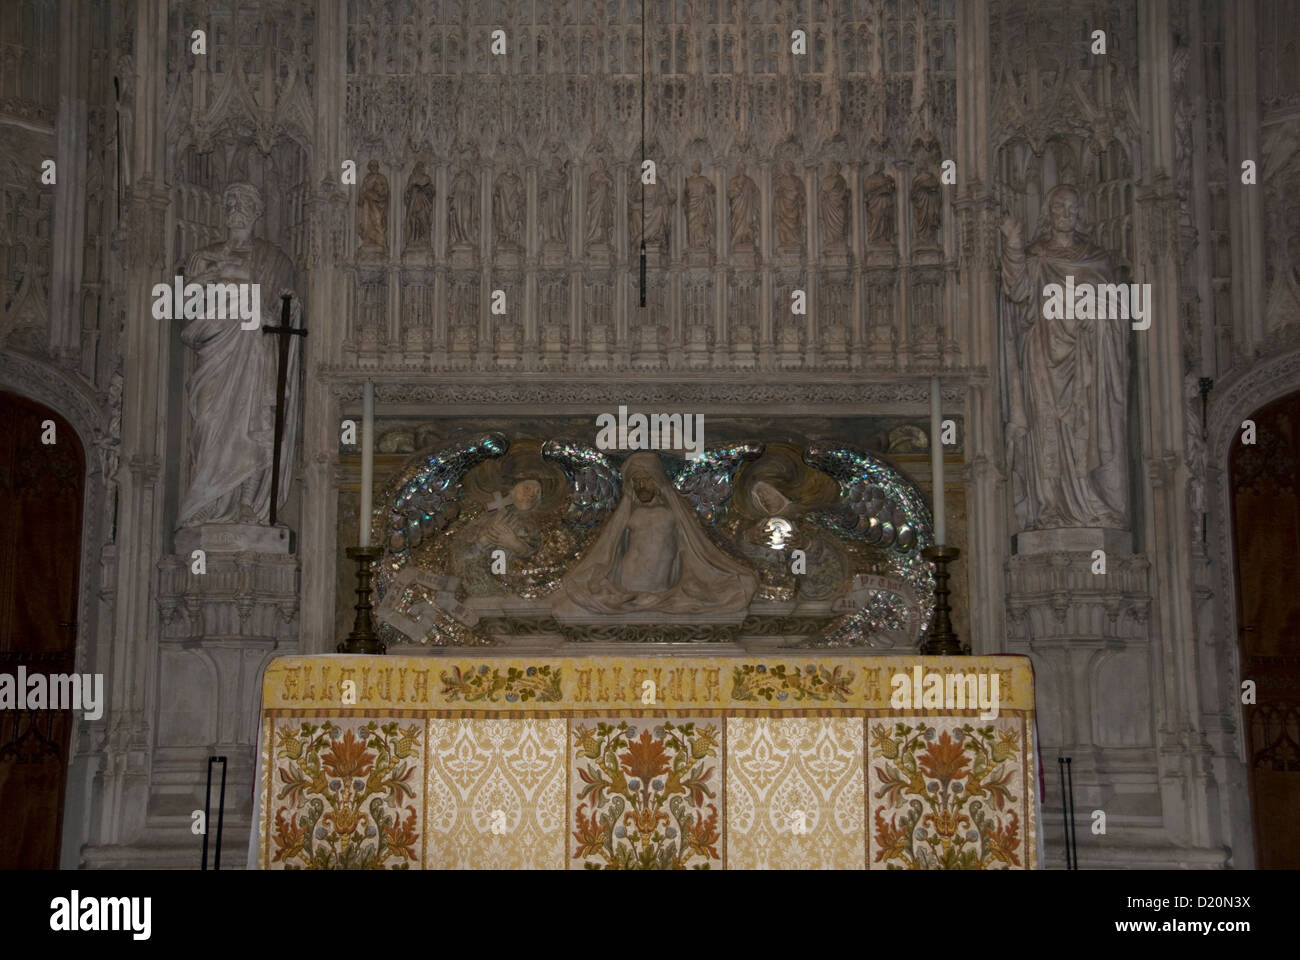 HERTS; ST.ALBANS ABBEY; THE ALTAR; THE RESURRECTION; SHRINE STS. ALBAN & AMPHIBALUS (DESIGNED BY ALFRED GILBERT) - Stock Image